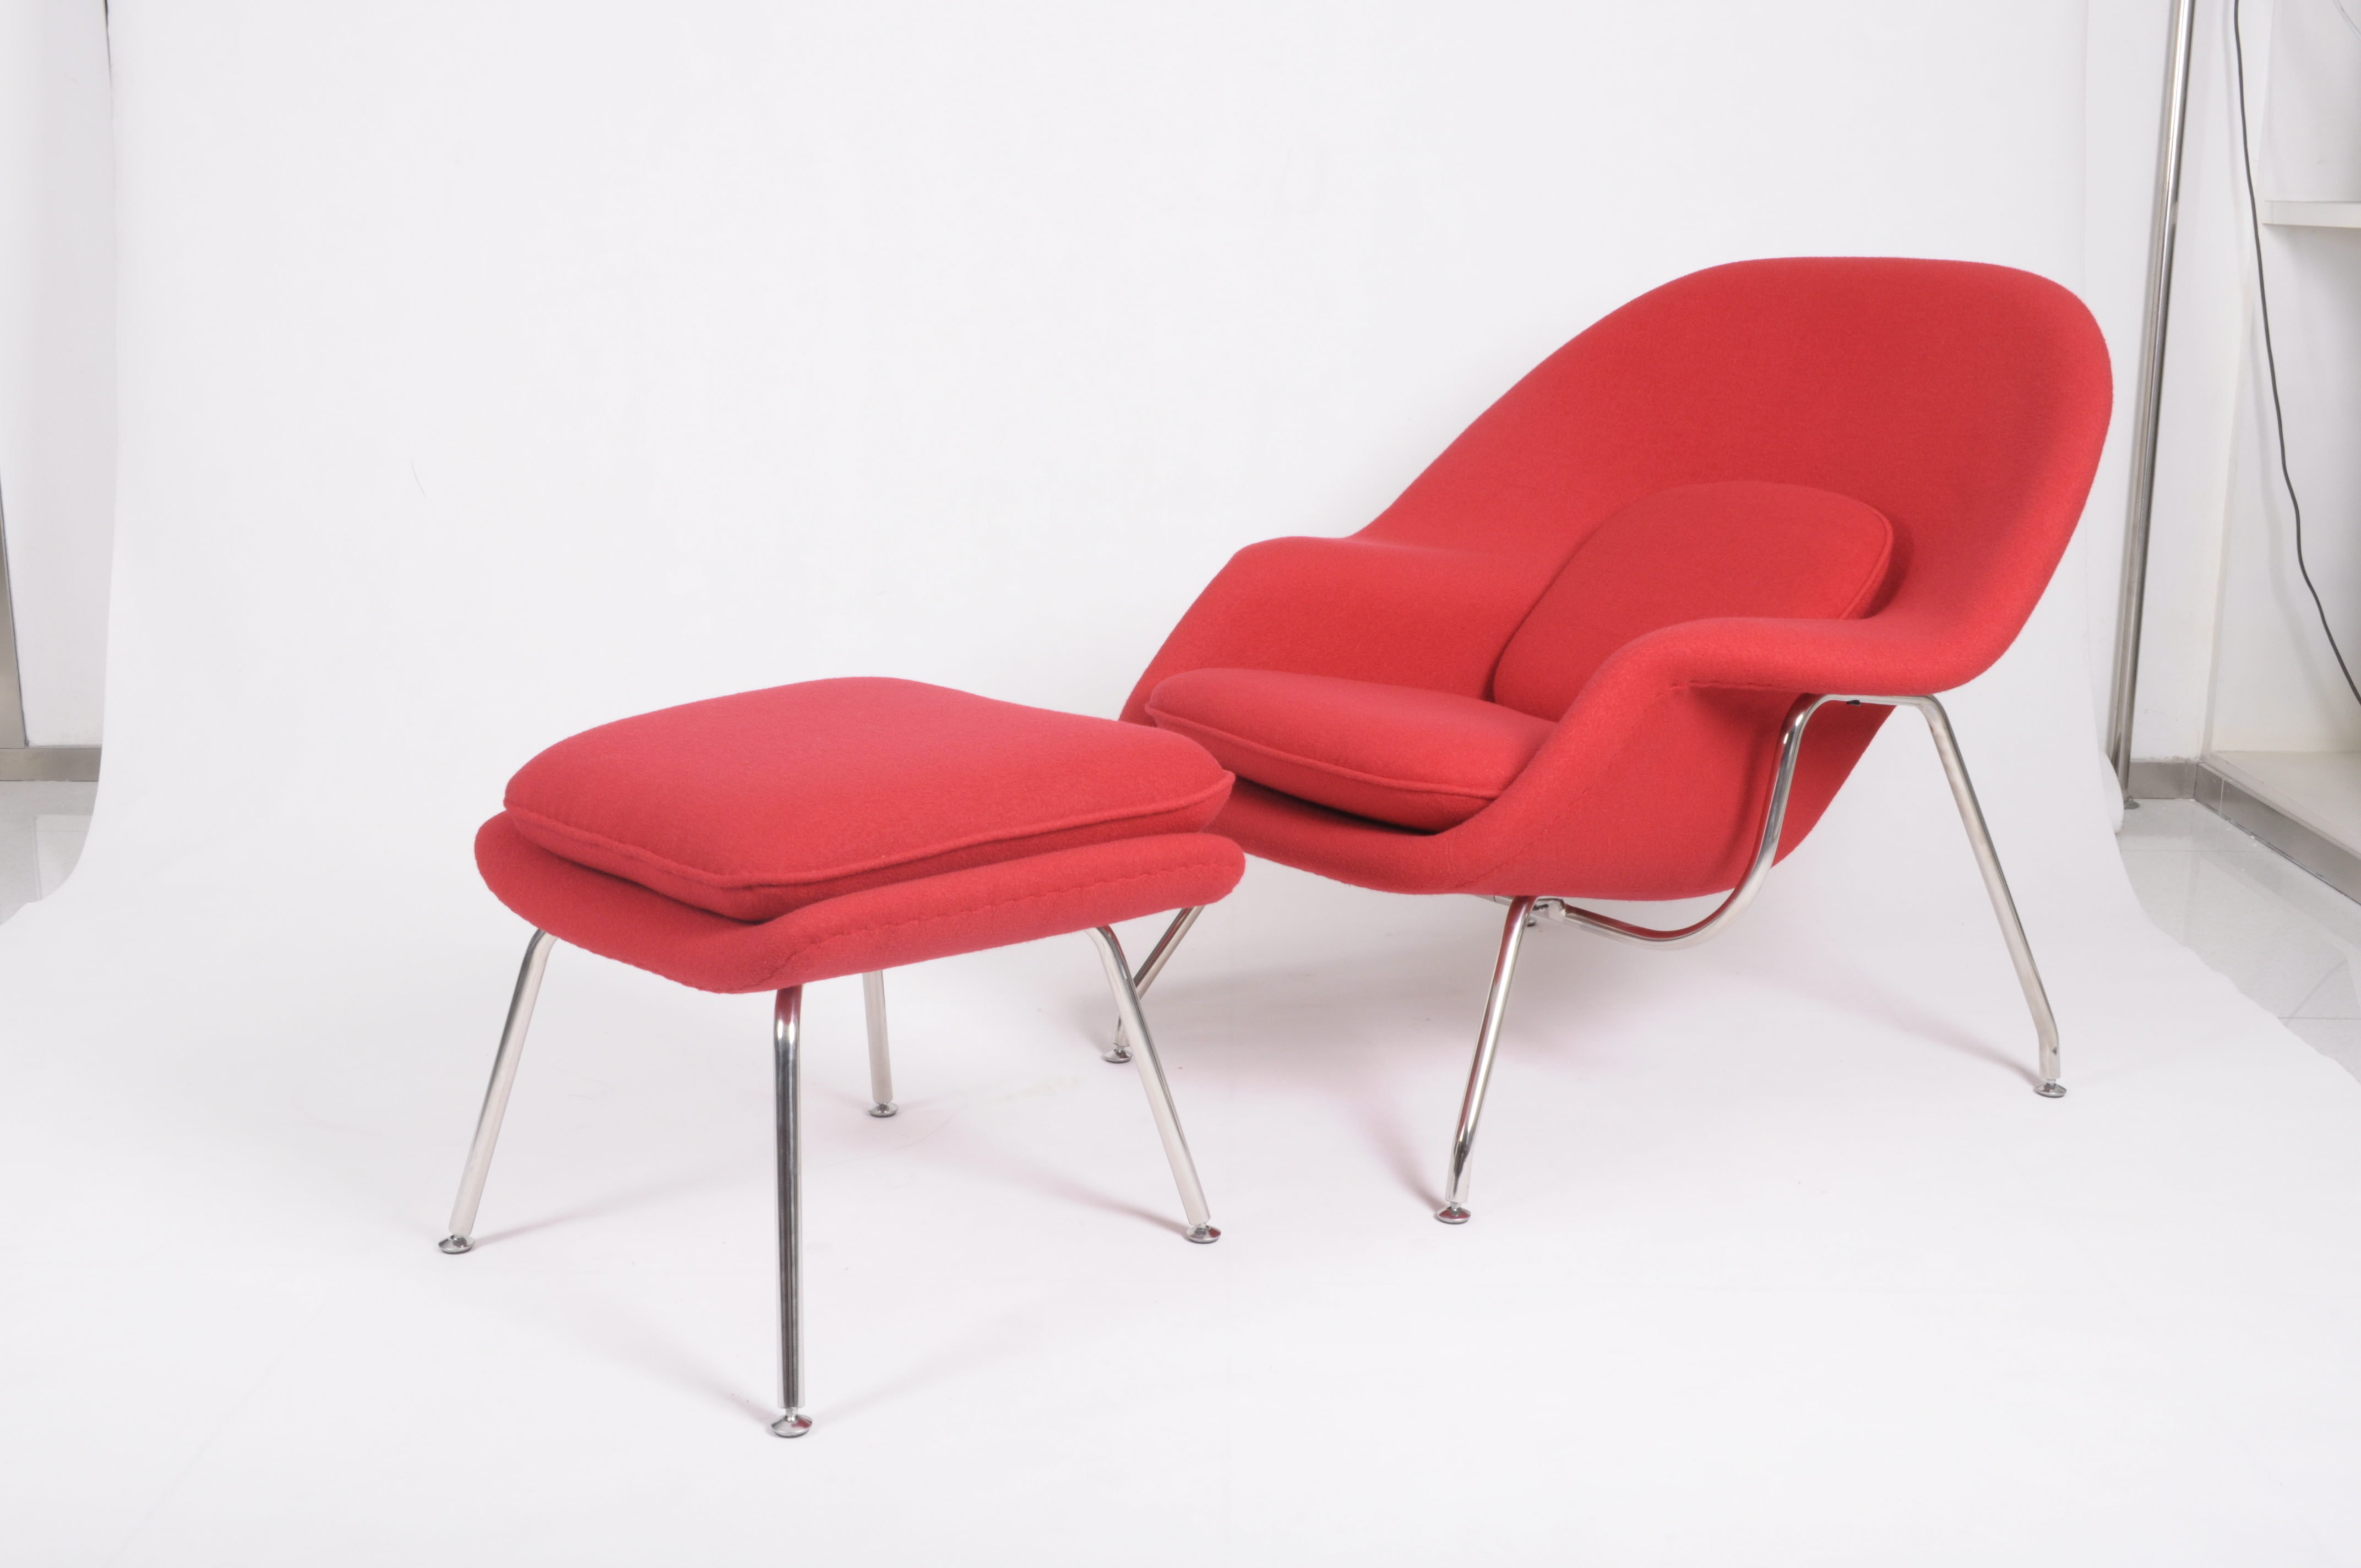 womb chair replica